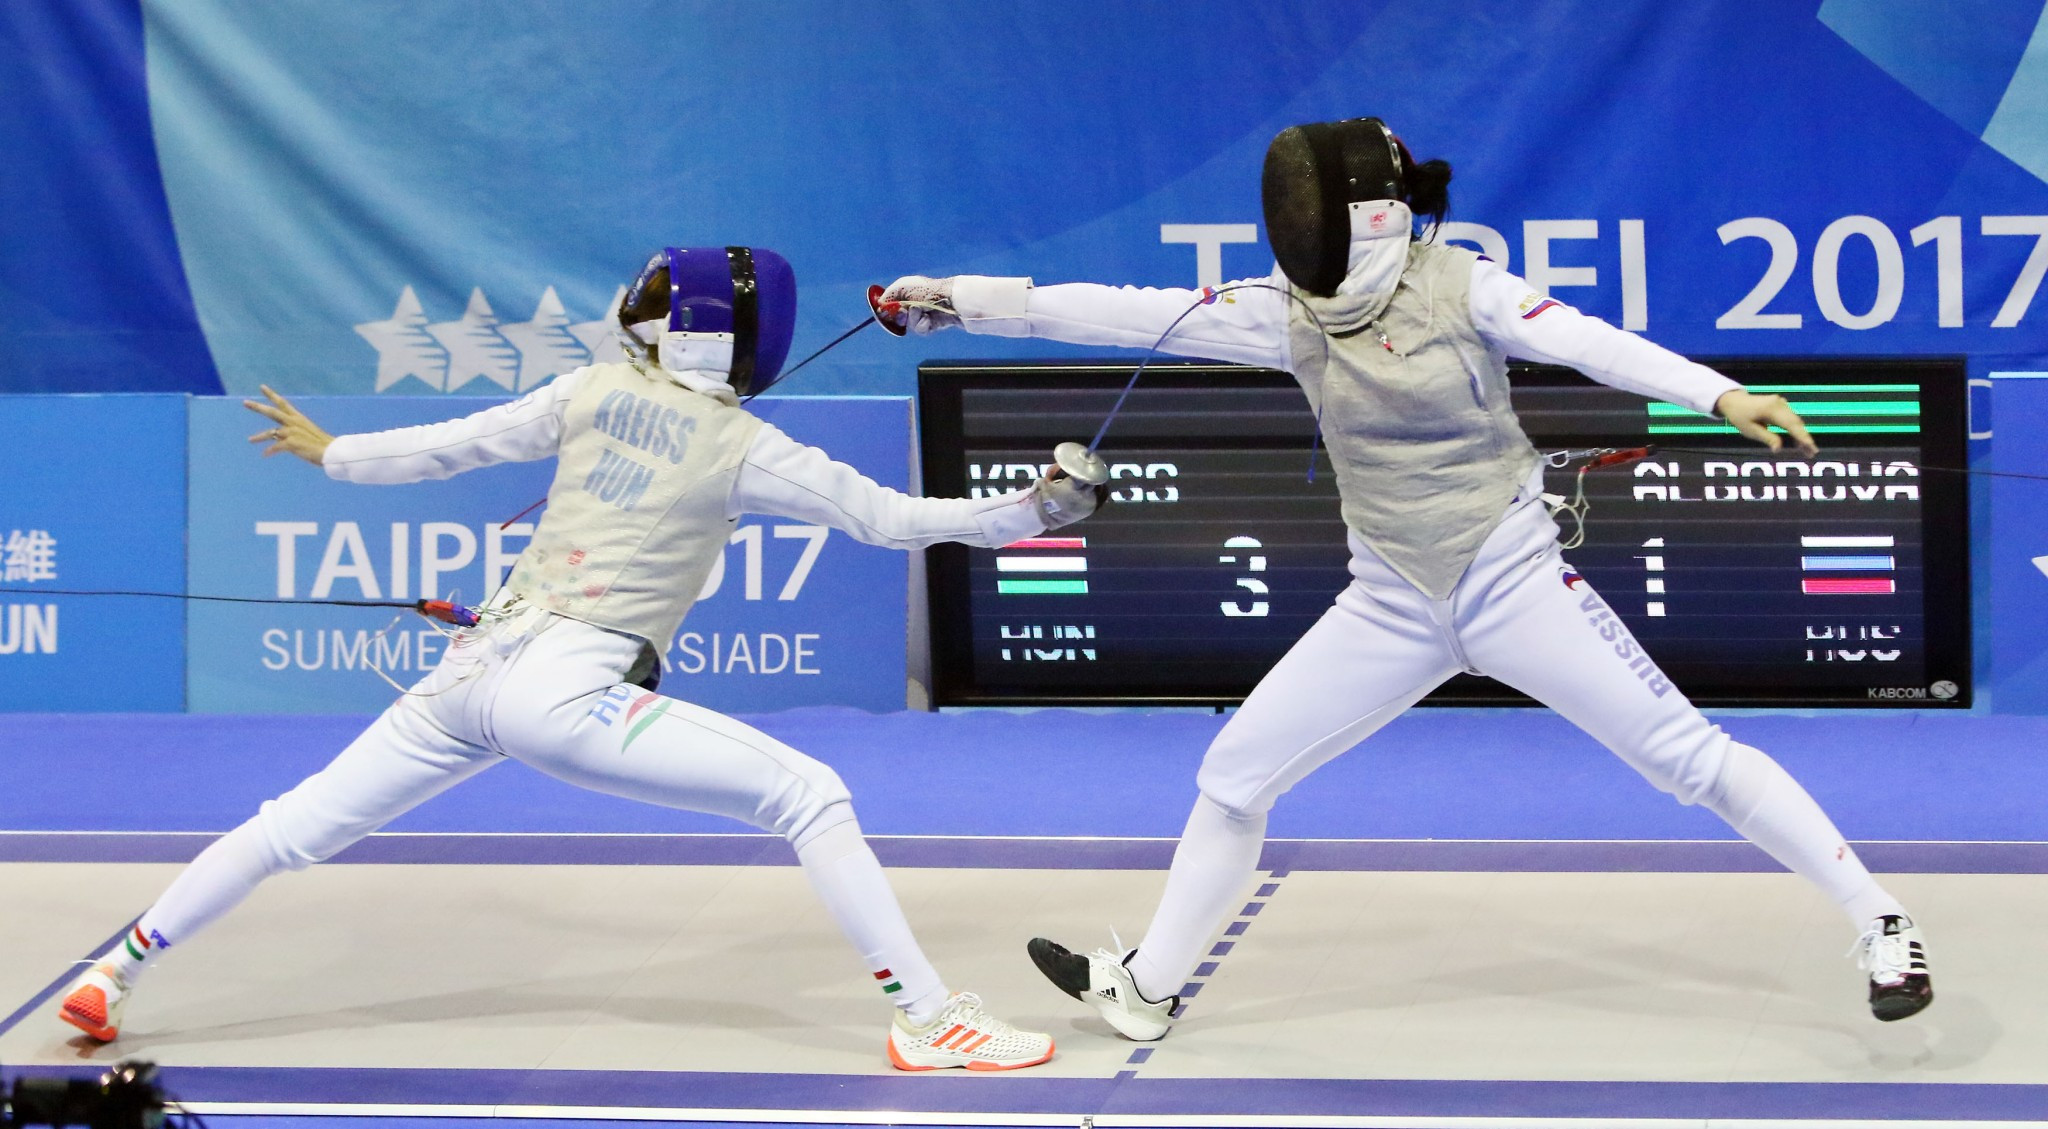 Mixed fortunes for Russian fencers in finals at Taipei 2017